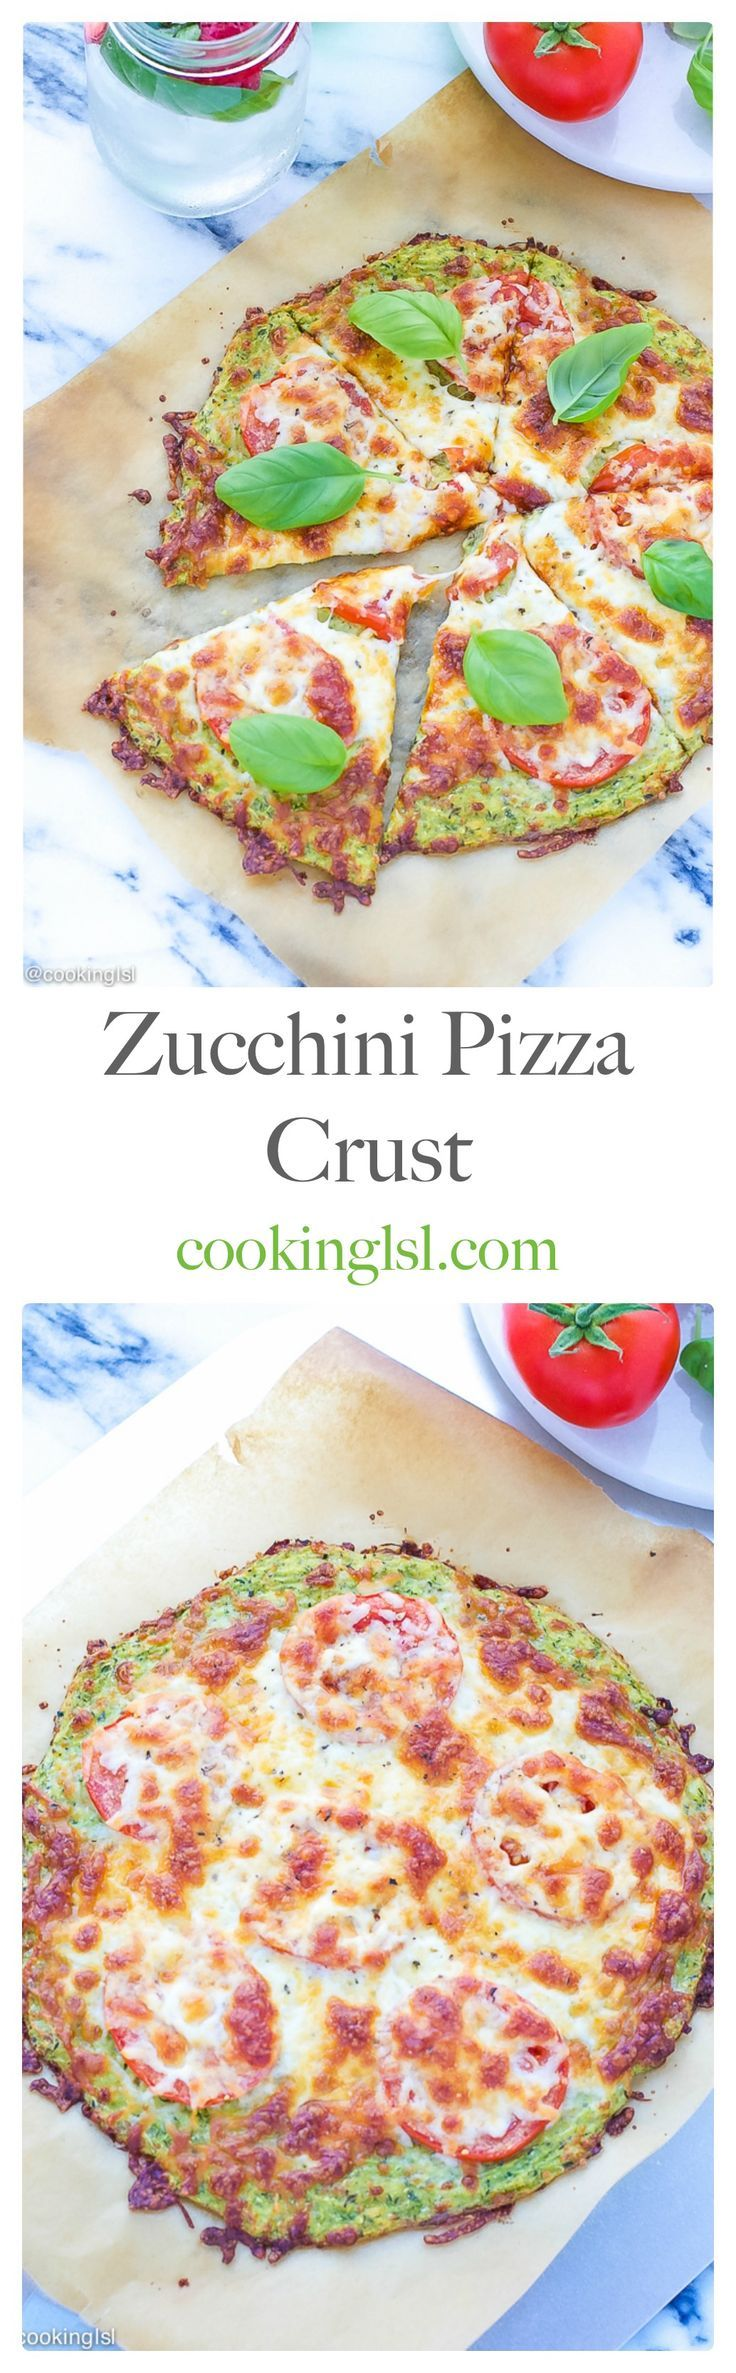 Zucchini-Pizza-Crust-Recipe #NaturalAmericanGoodness #CollectiveBias #ad